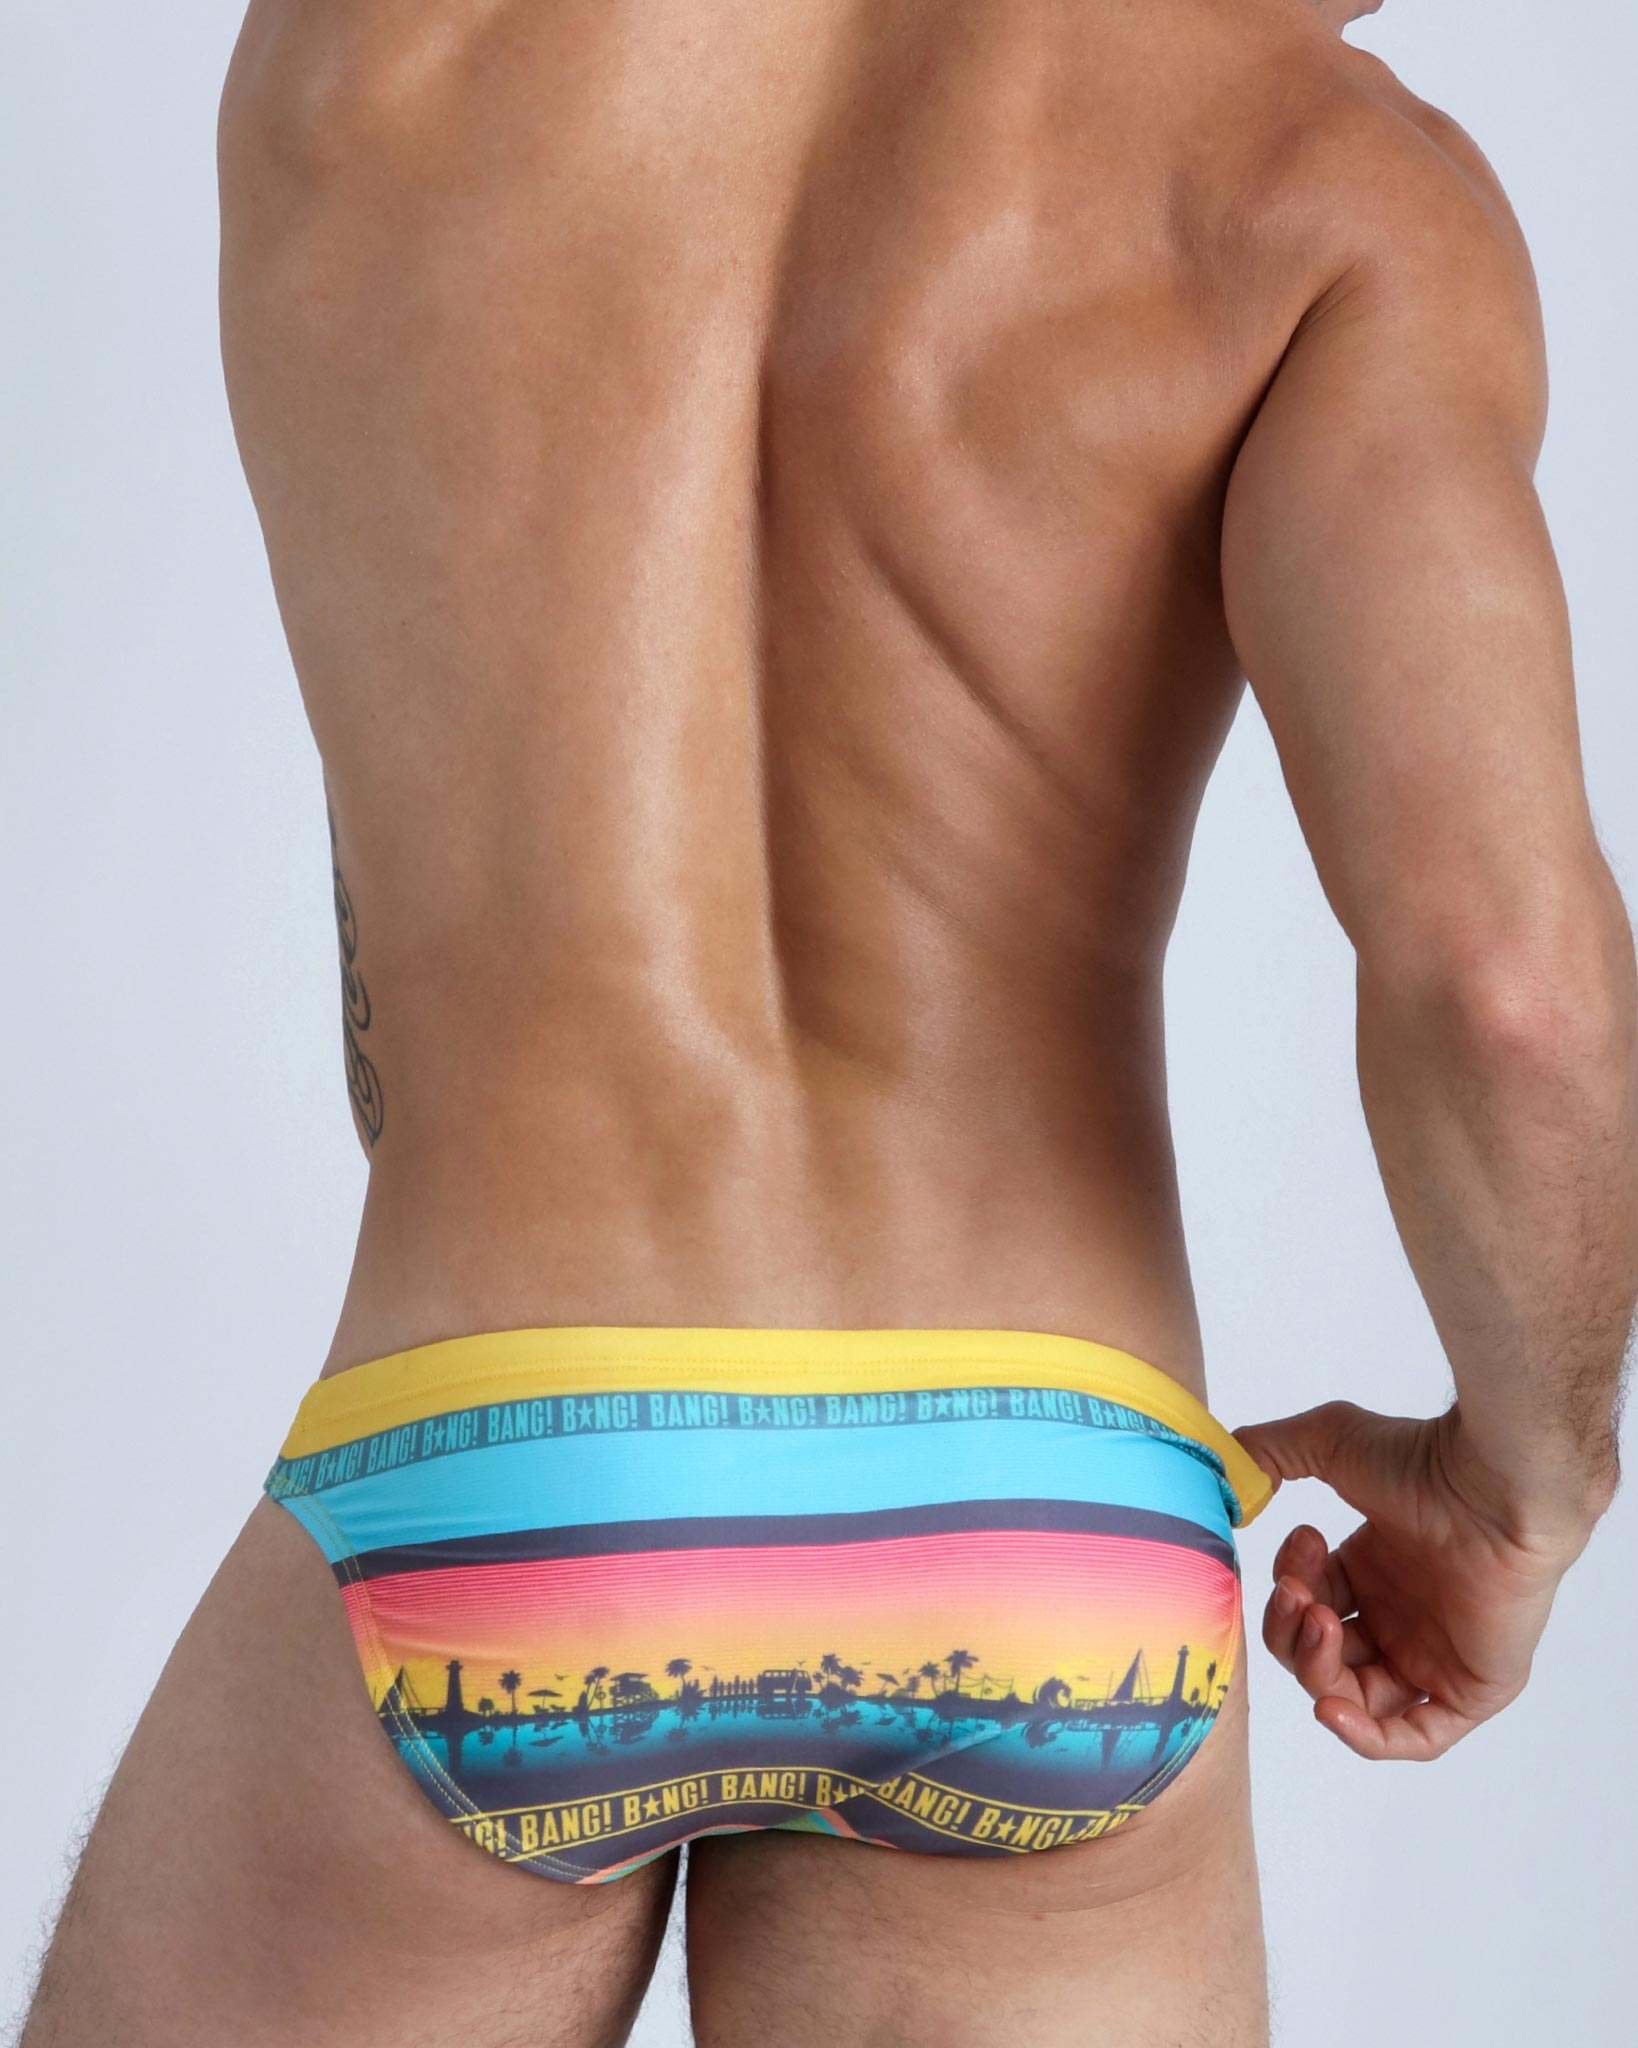 Back view of a male model wearing men's swim mini-brief in bold yellow by the Bang! Clothes brand of men's beachwear.